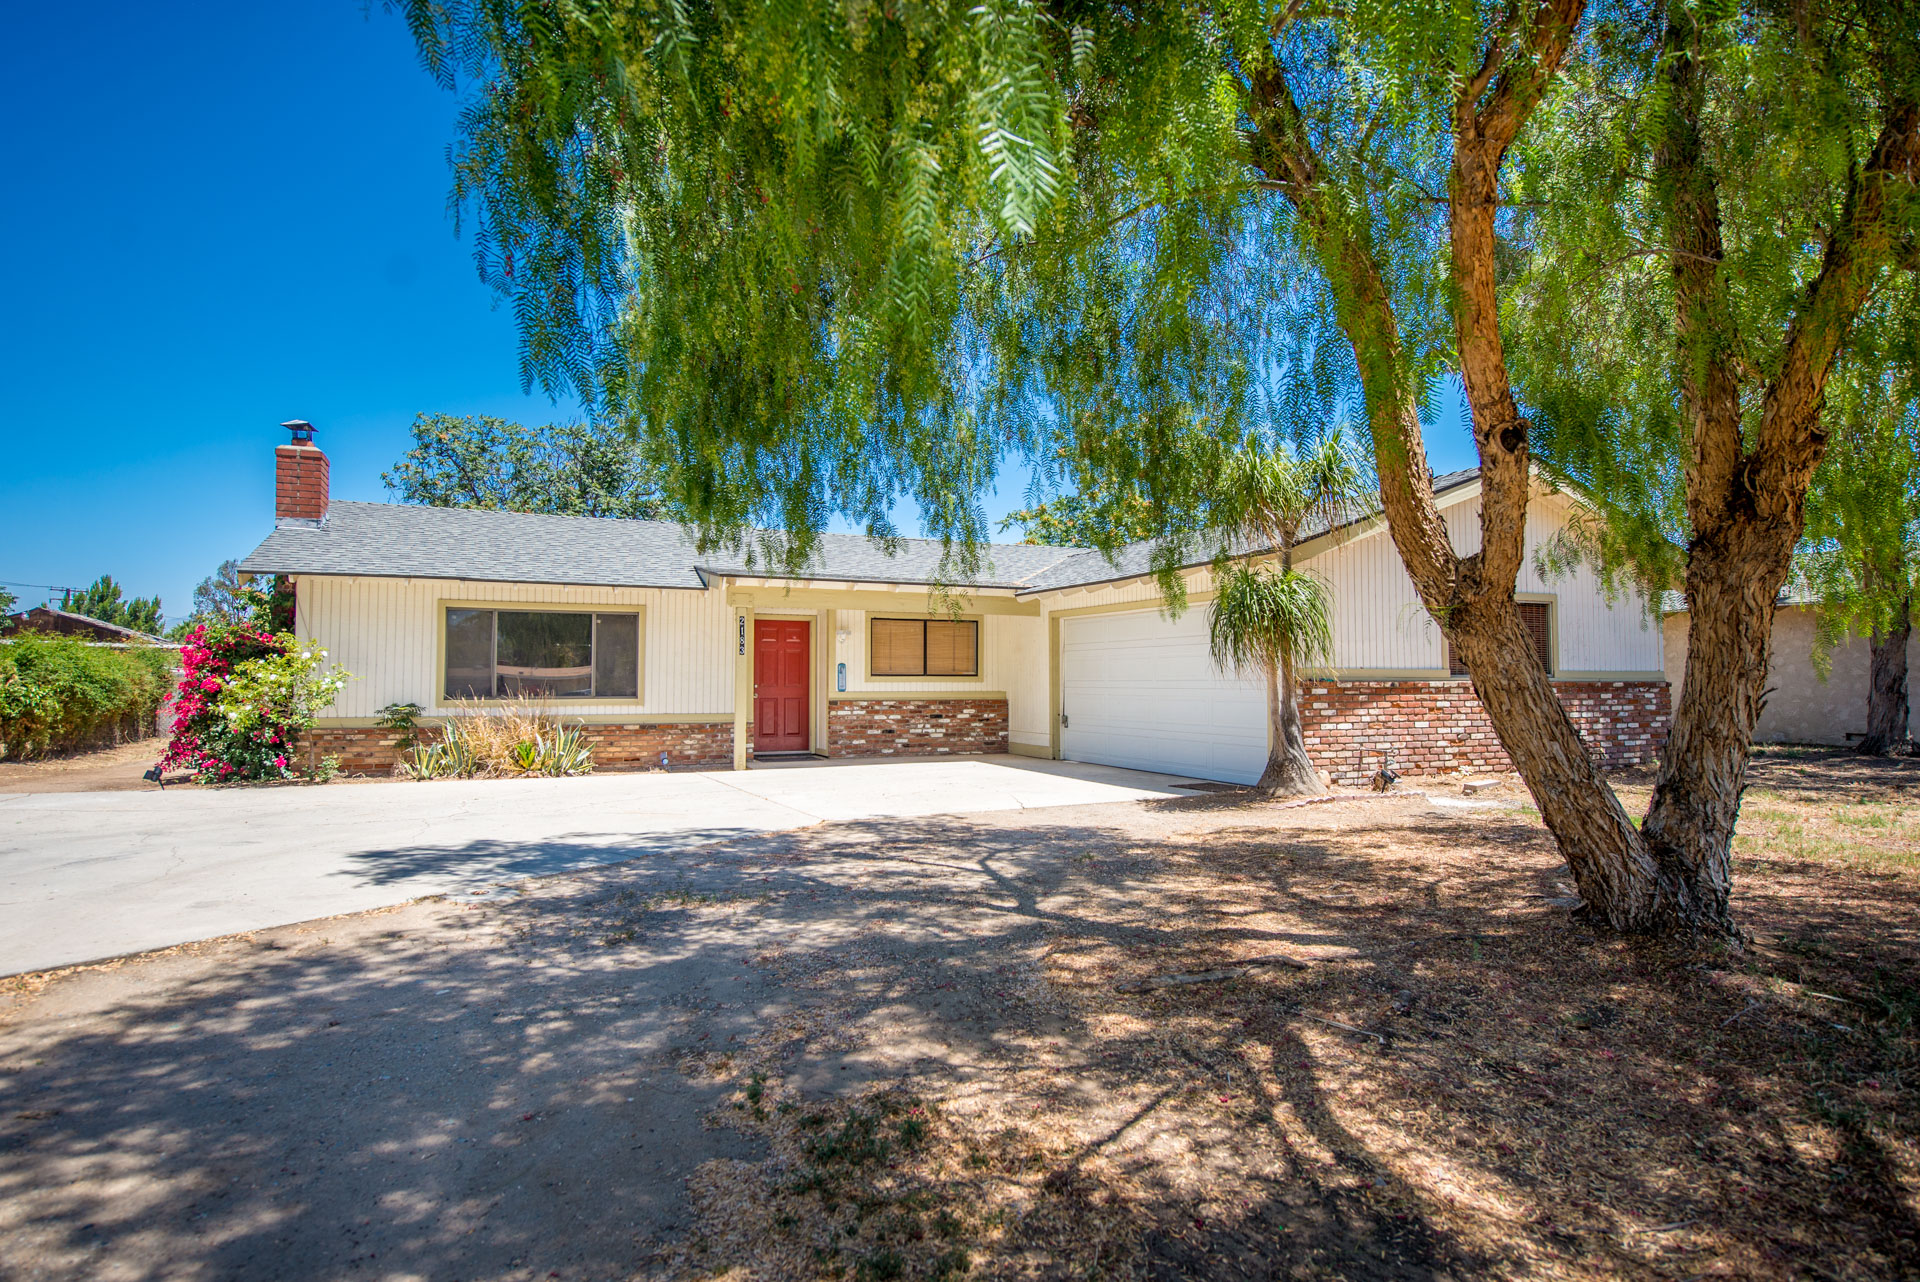 2183 1st Street Norco CA 92860 [Open House]